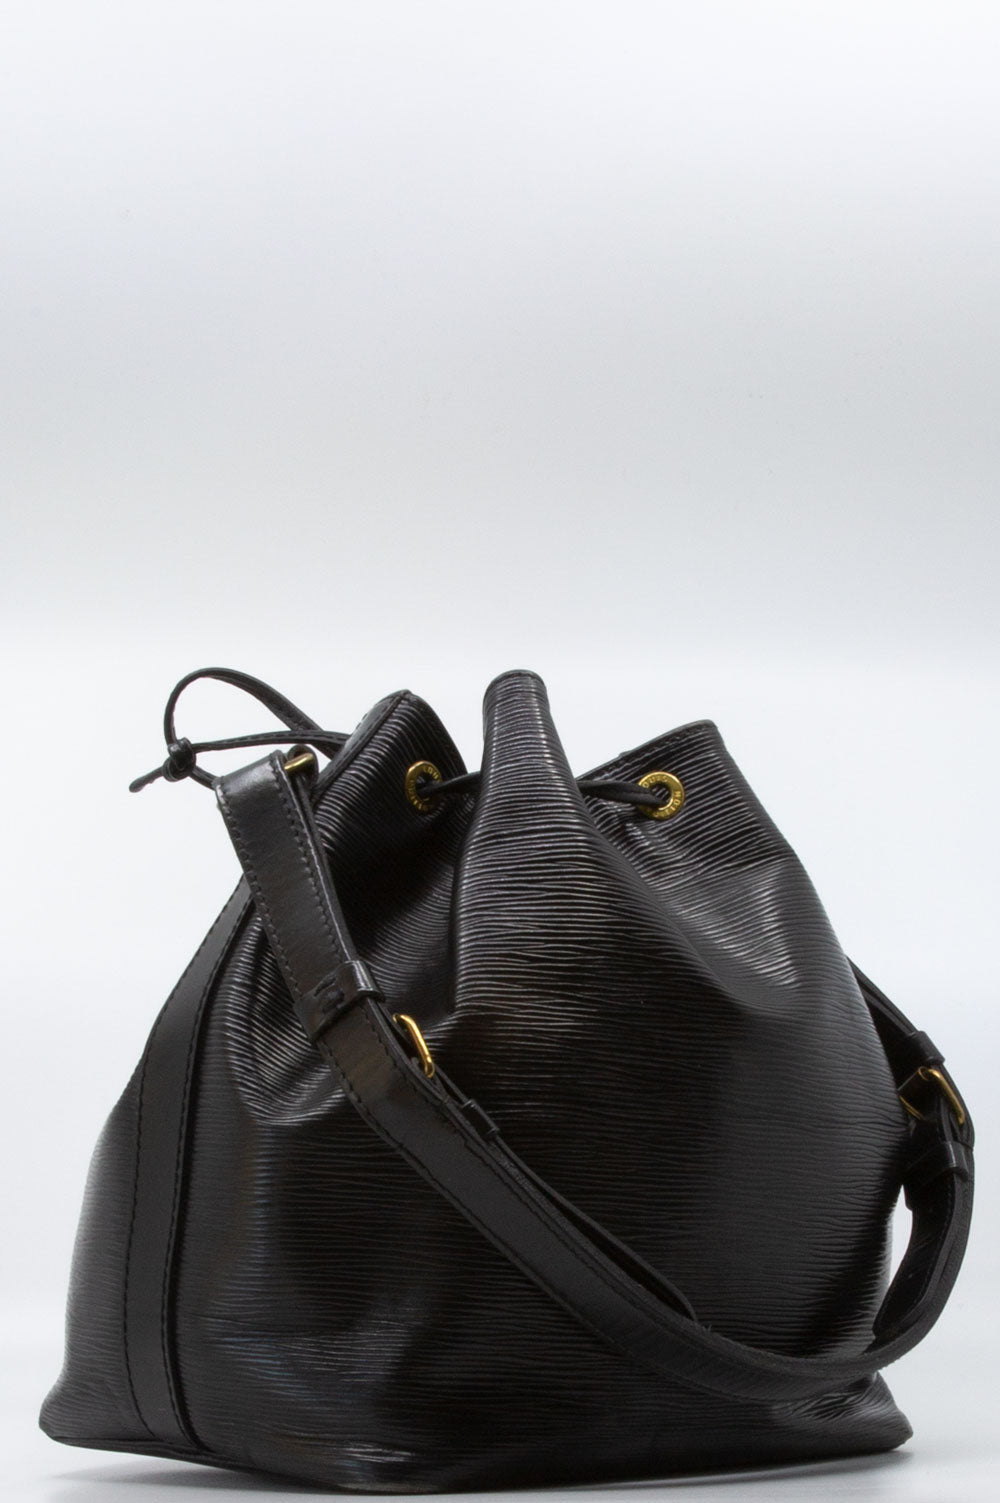 LOUIS VUITTON Petit Sac Noé Epi Leather